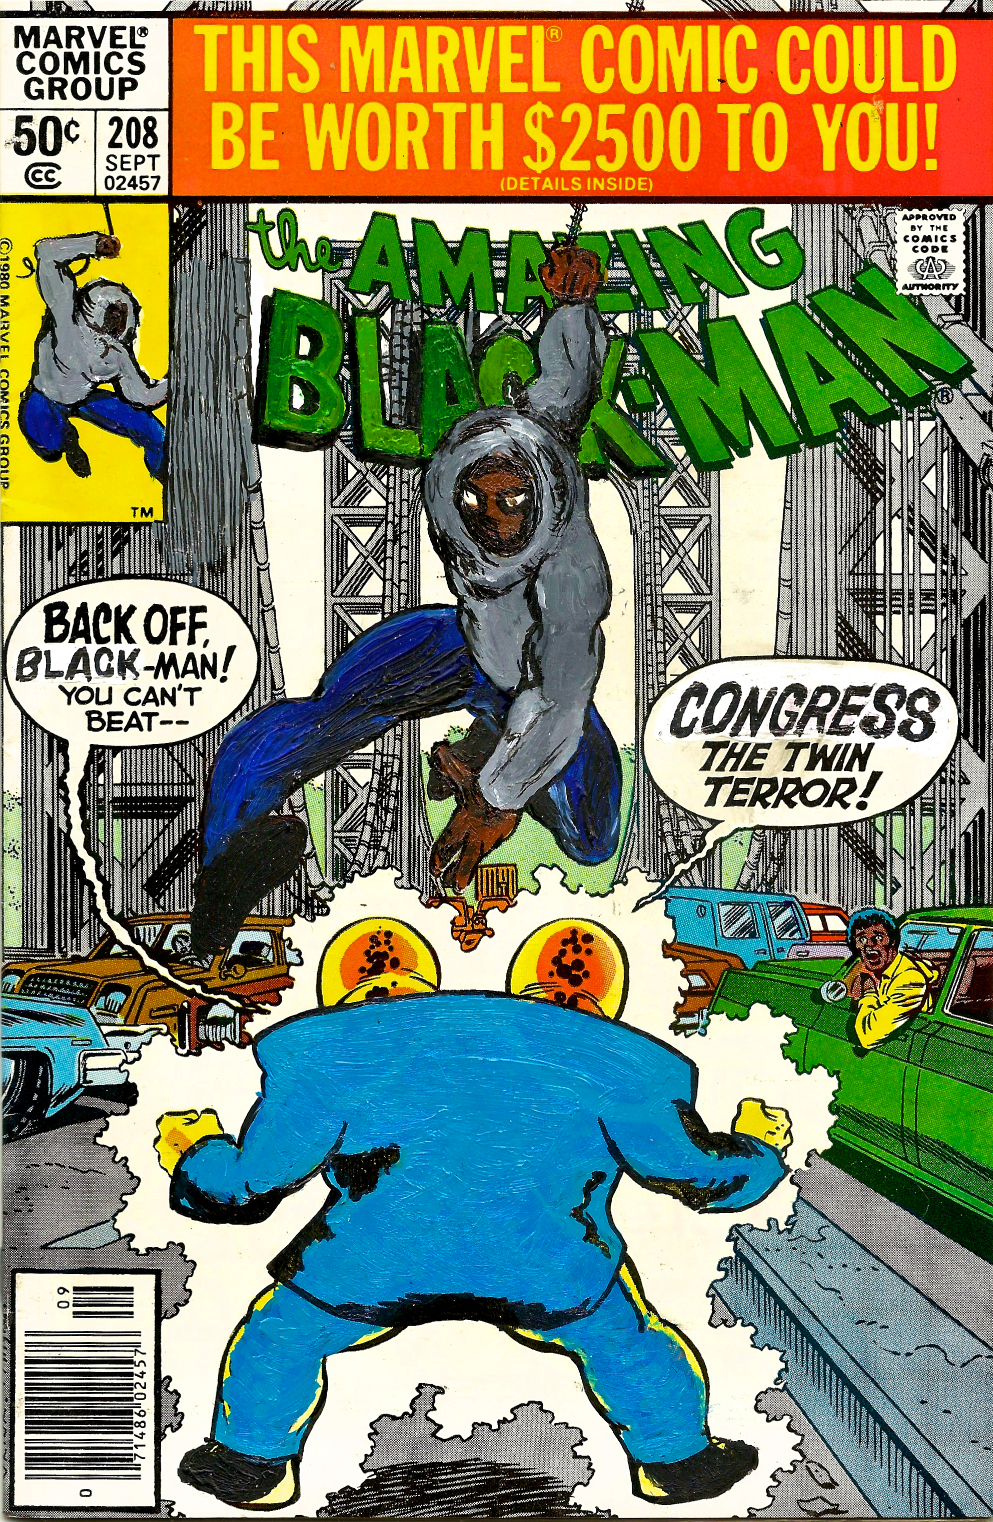 Kumasi J. Barnett  The Amazing Black-Man #208 Congress the Twin Terror  2016 Acrylic, marker, pen and oil marker on comic book 9 3/4h x 6 1/4w inches KB-032